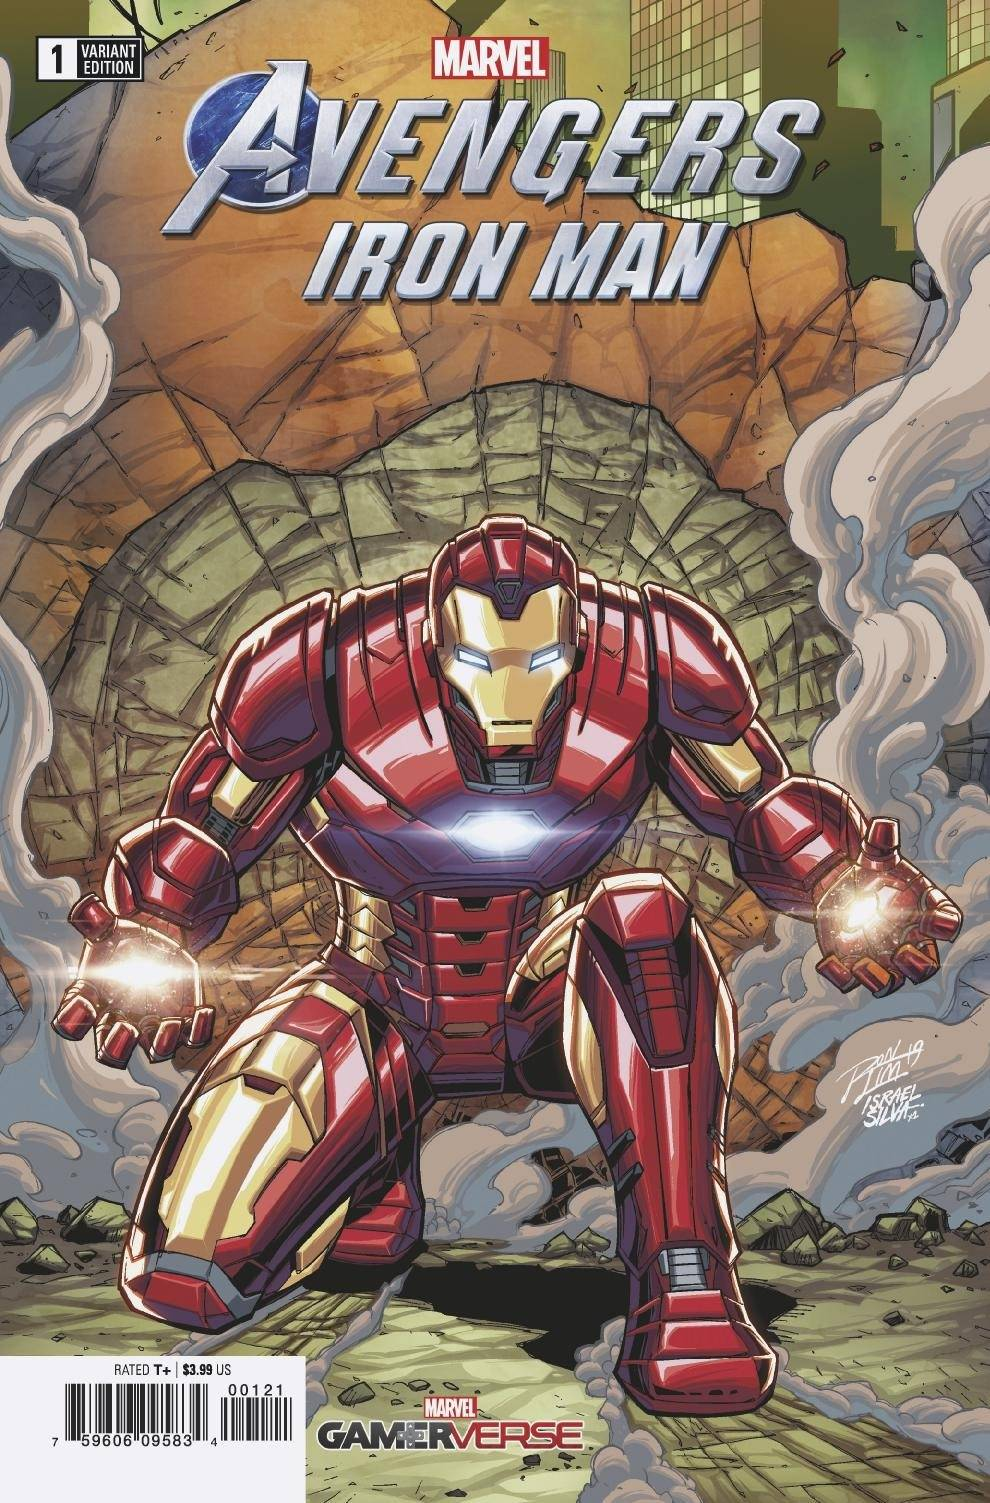 MARVELS AVENGERS IRON MAN #1 RON LIM VAR